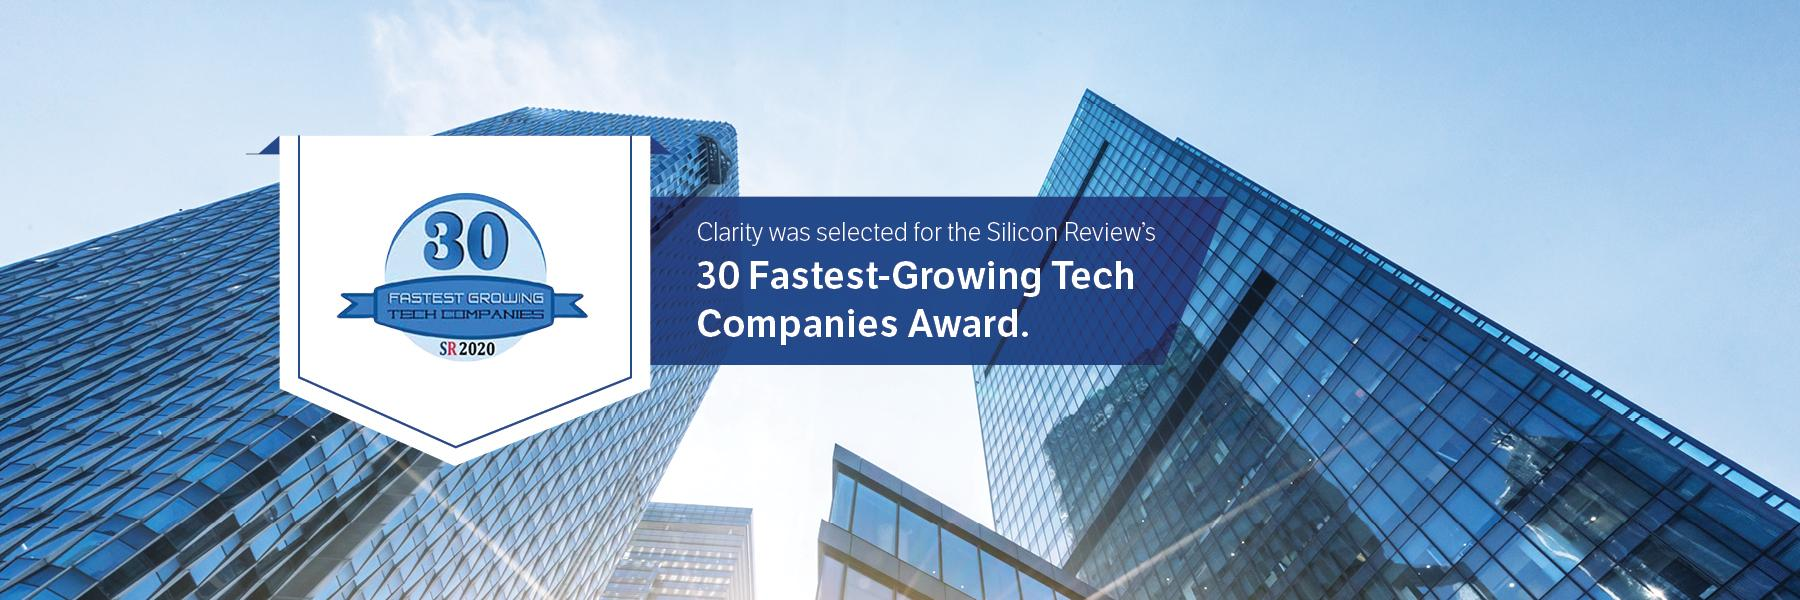 30 Fastest Growing Tech Award